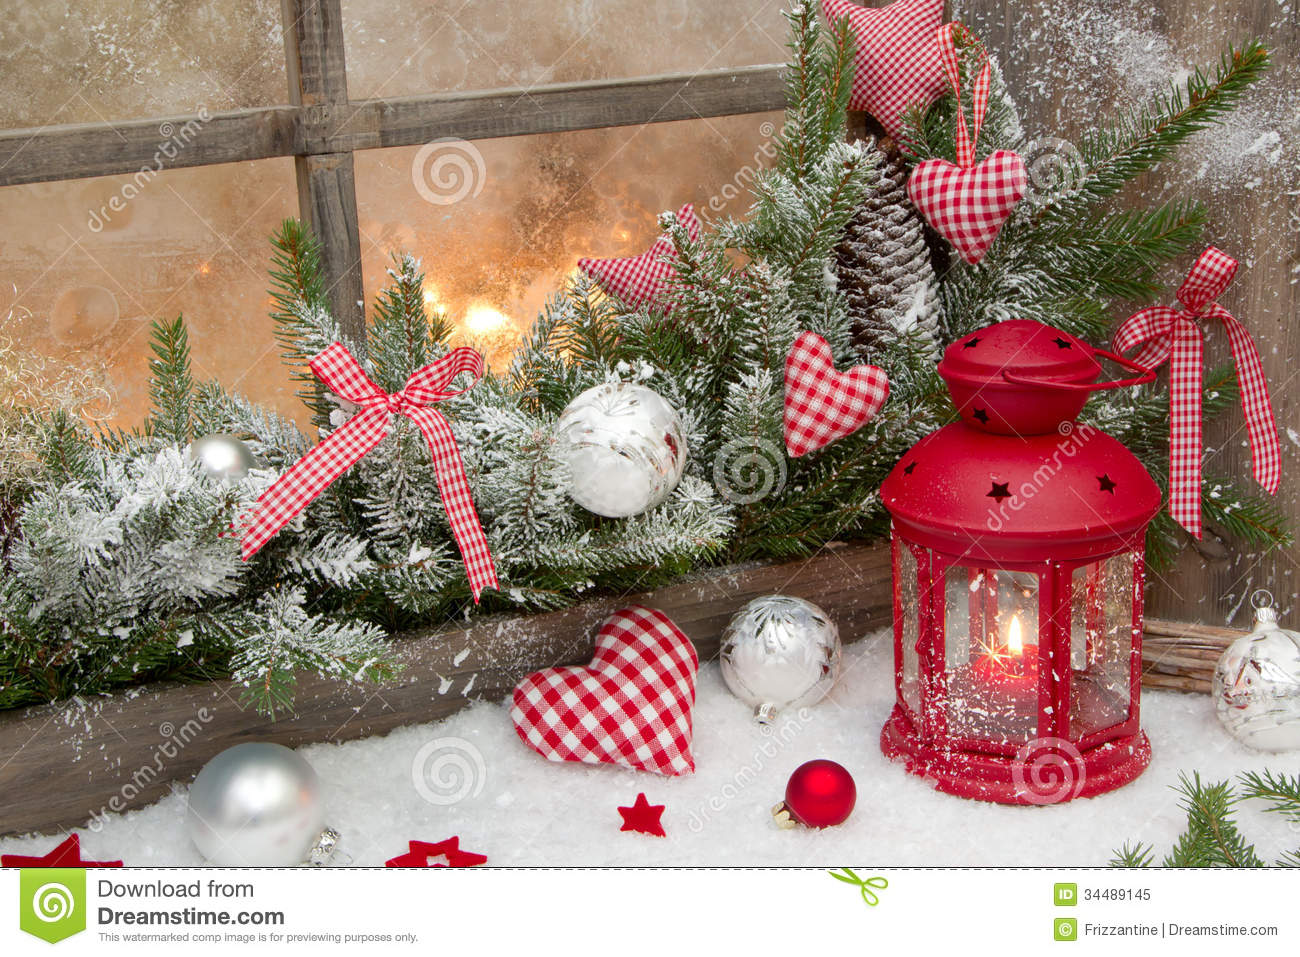 download red rustic christmas decoration on window sill with red checked stock image image of - Window Sill Christmas Decorations